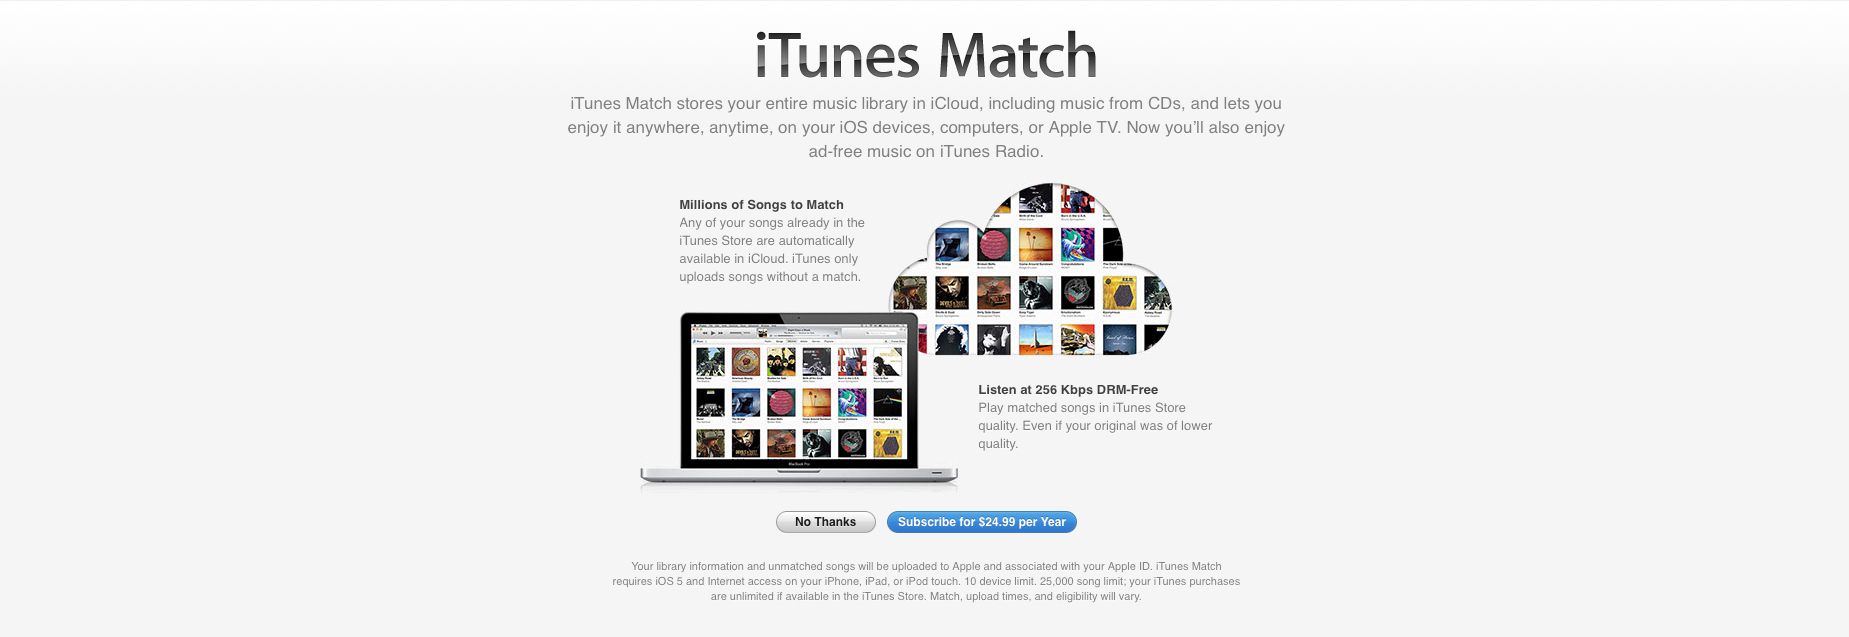 Apple is looking to increase the music library matching limit to 100,000 tracks